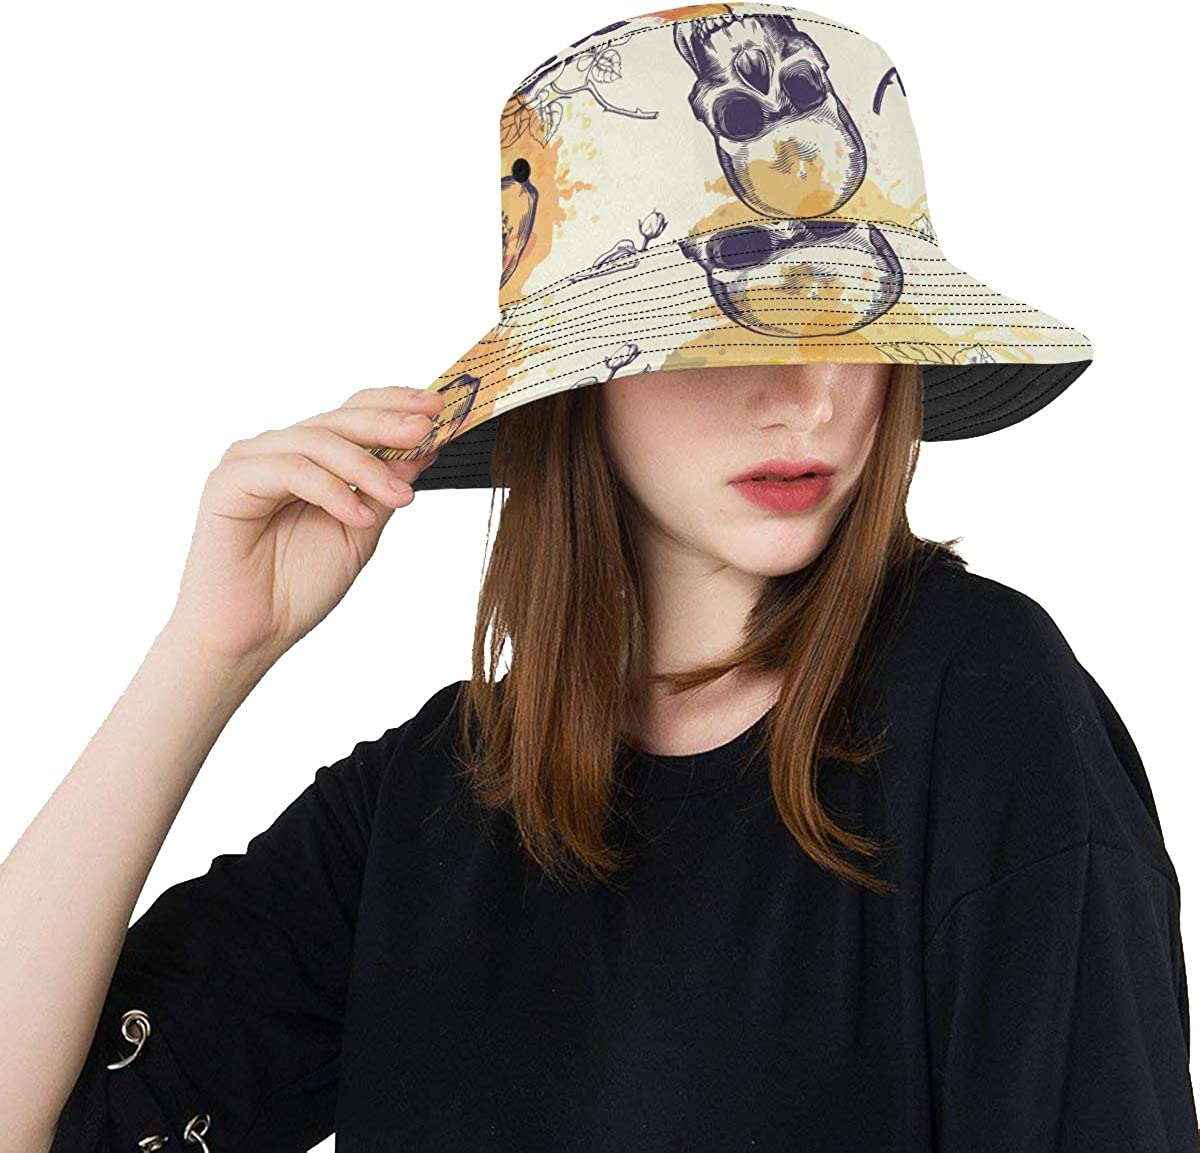 Skull Rose Flower Party Summer Unisex Fishing Sun Top Bucket Hats for Kid Teens Women and Men with Packable Fisherman Cap for Outdoor Baseball Sport Picnic